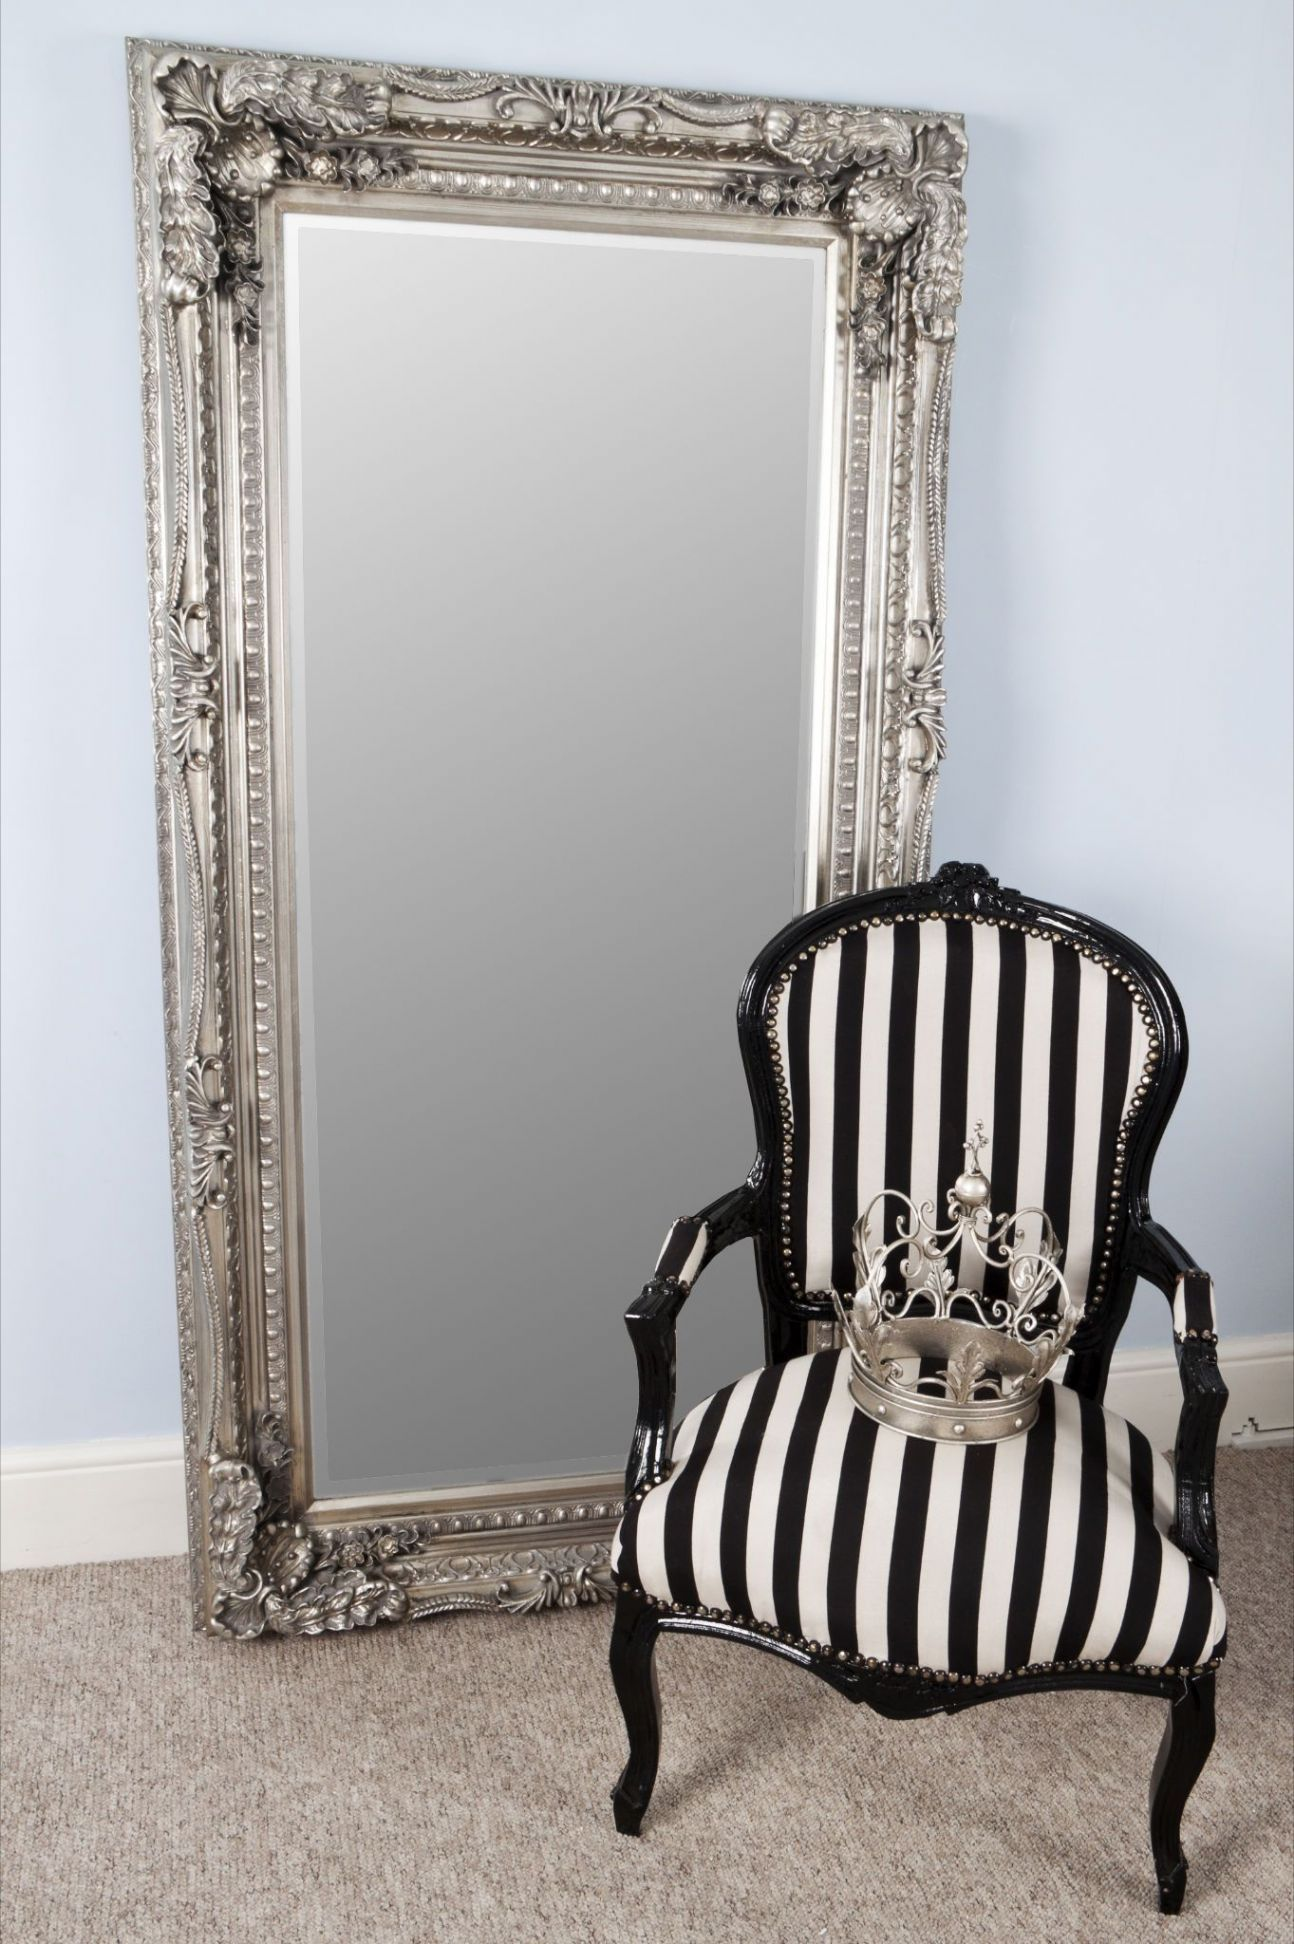 Long Mirror For Bedroom Image Detail For Large Louis Antique Style Carved Silver Full